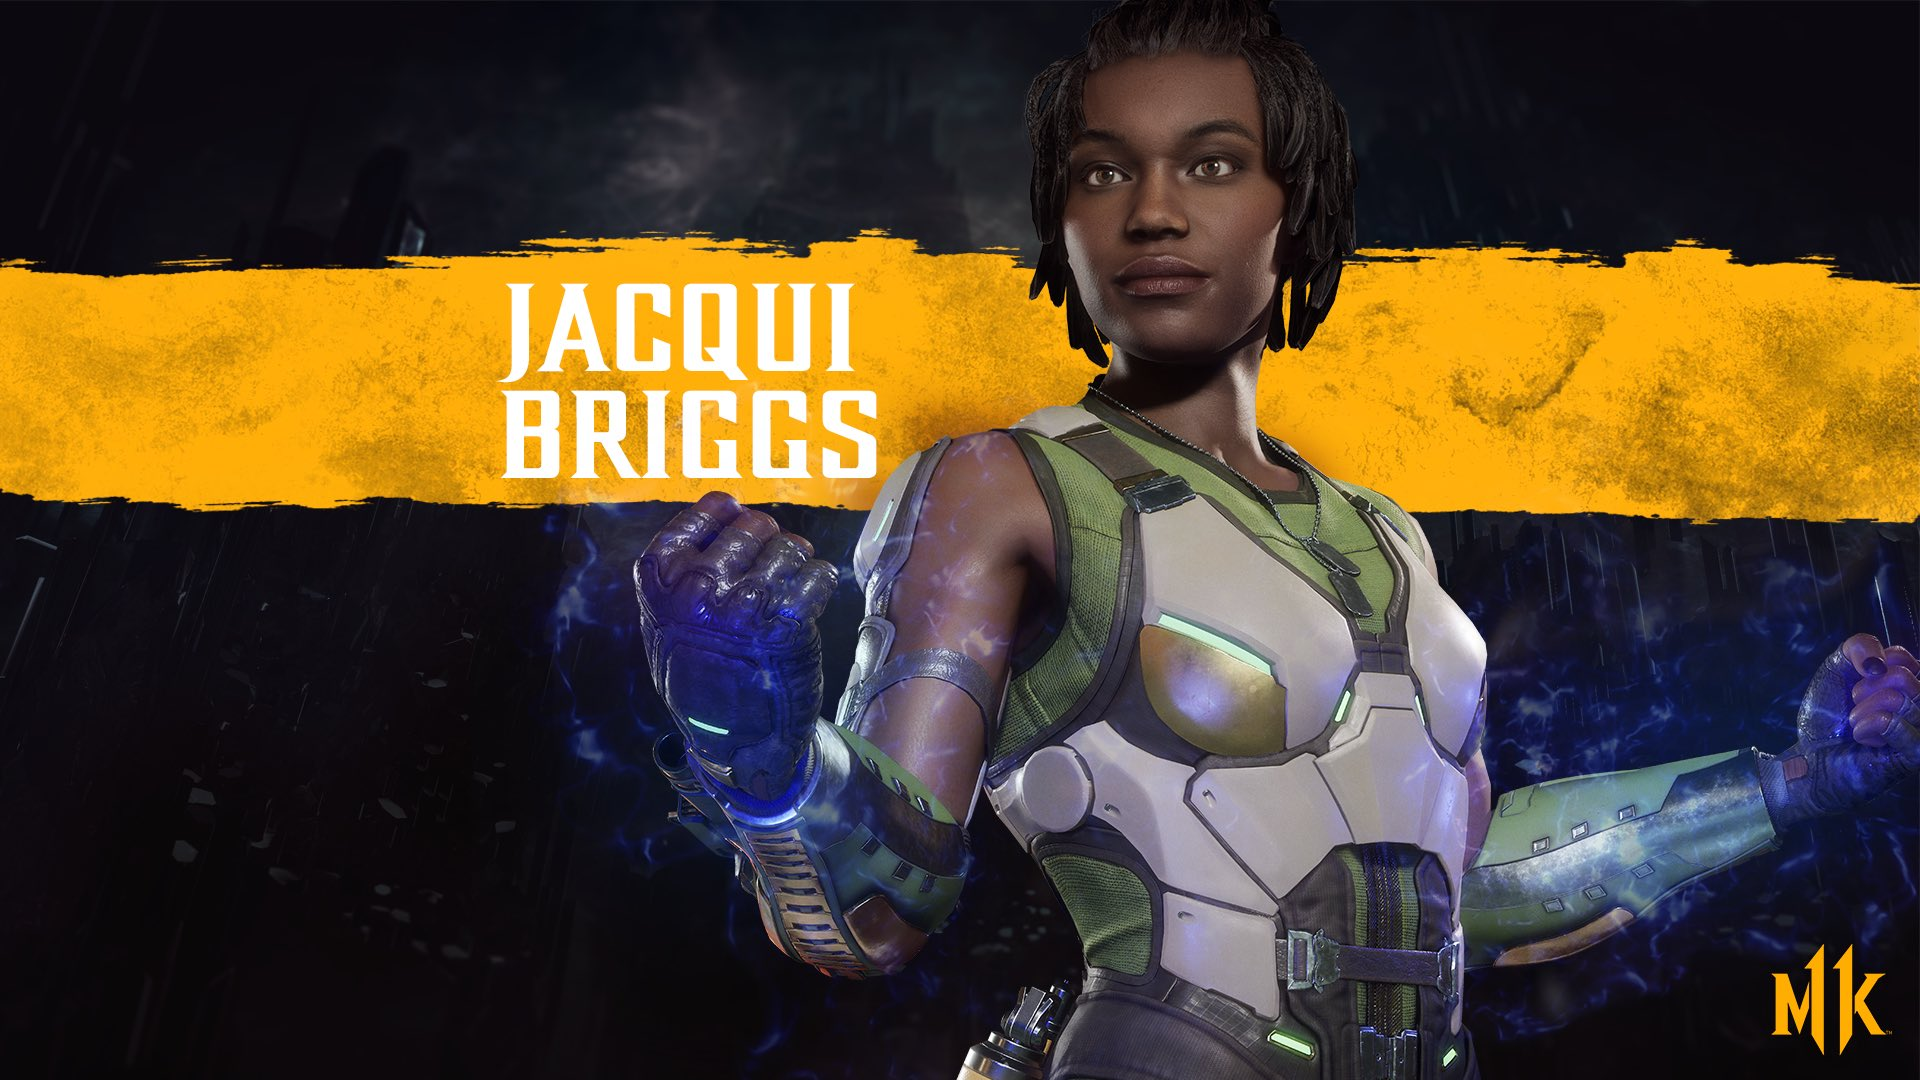 Mortal Kombat 11 background - Jacqui Briggs